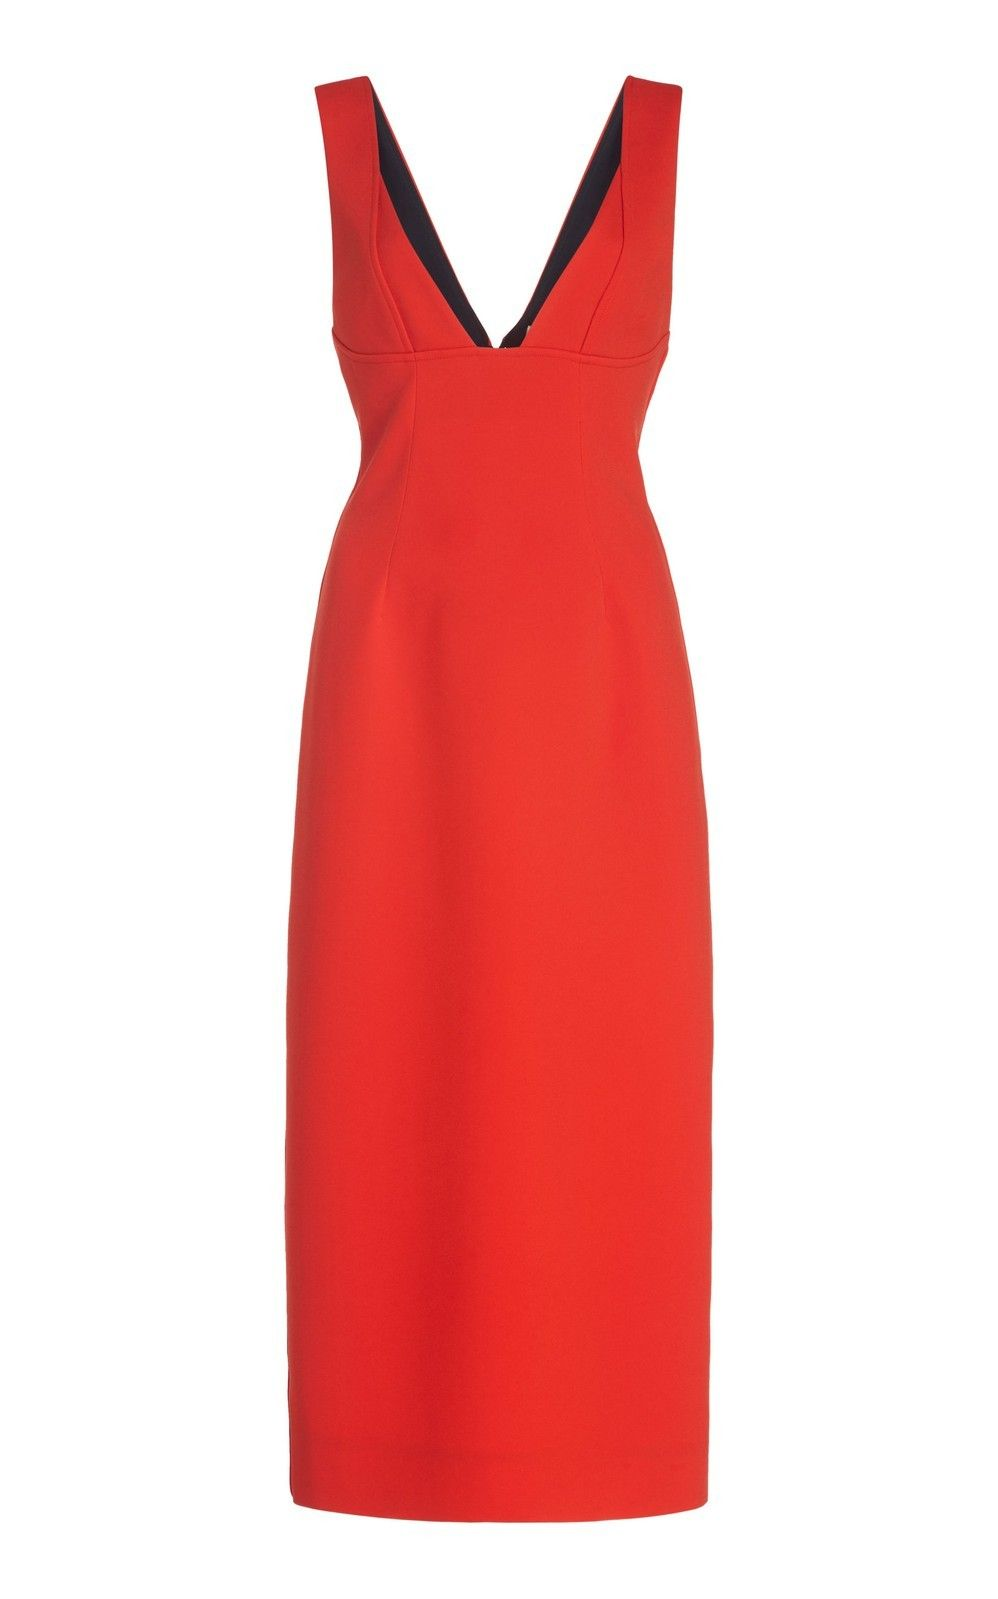 Red Crepe Dress Victoria Beckham Red Dresses Classy Simple Red Dress Classy Dress [ 1380 x 920 Pixel ]